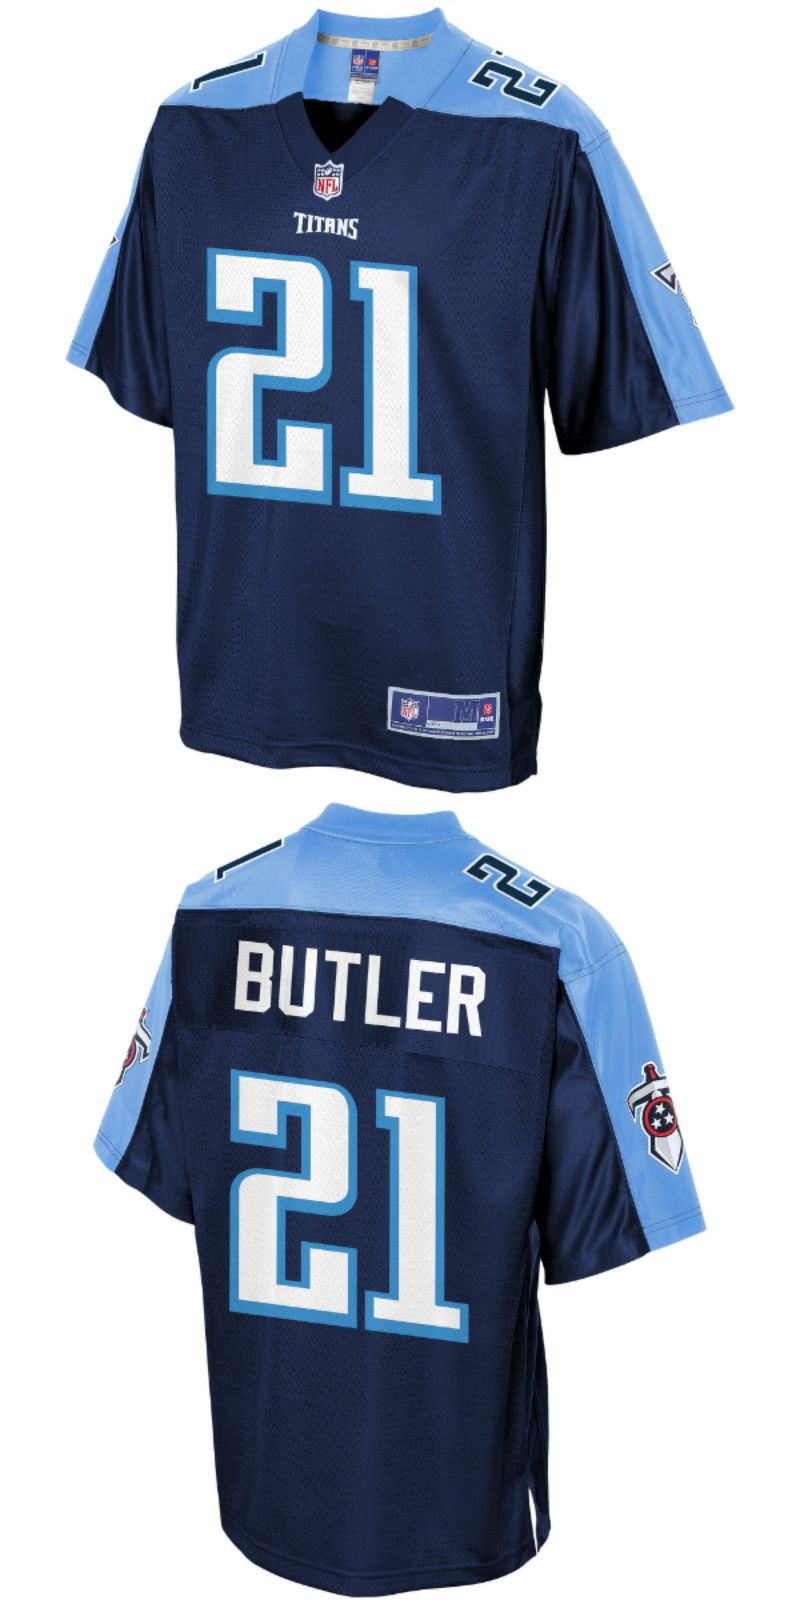 Malcolm Butler Tennessee Titans Nfl Pro Line Player Jersey Navy